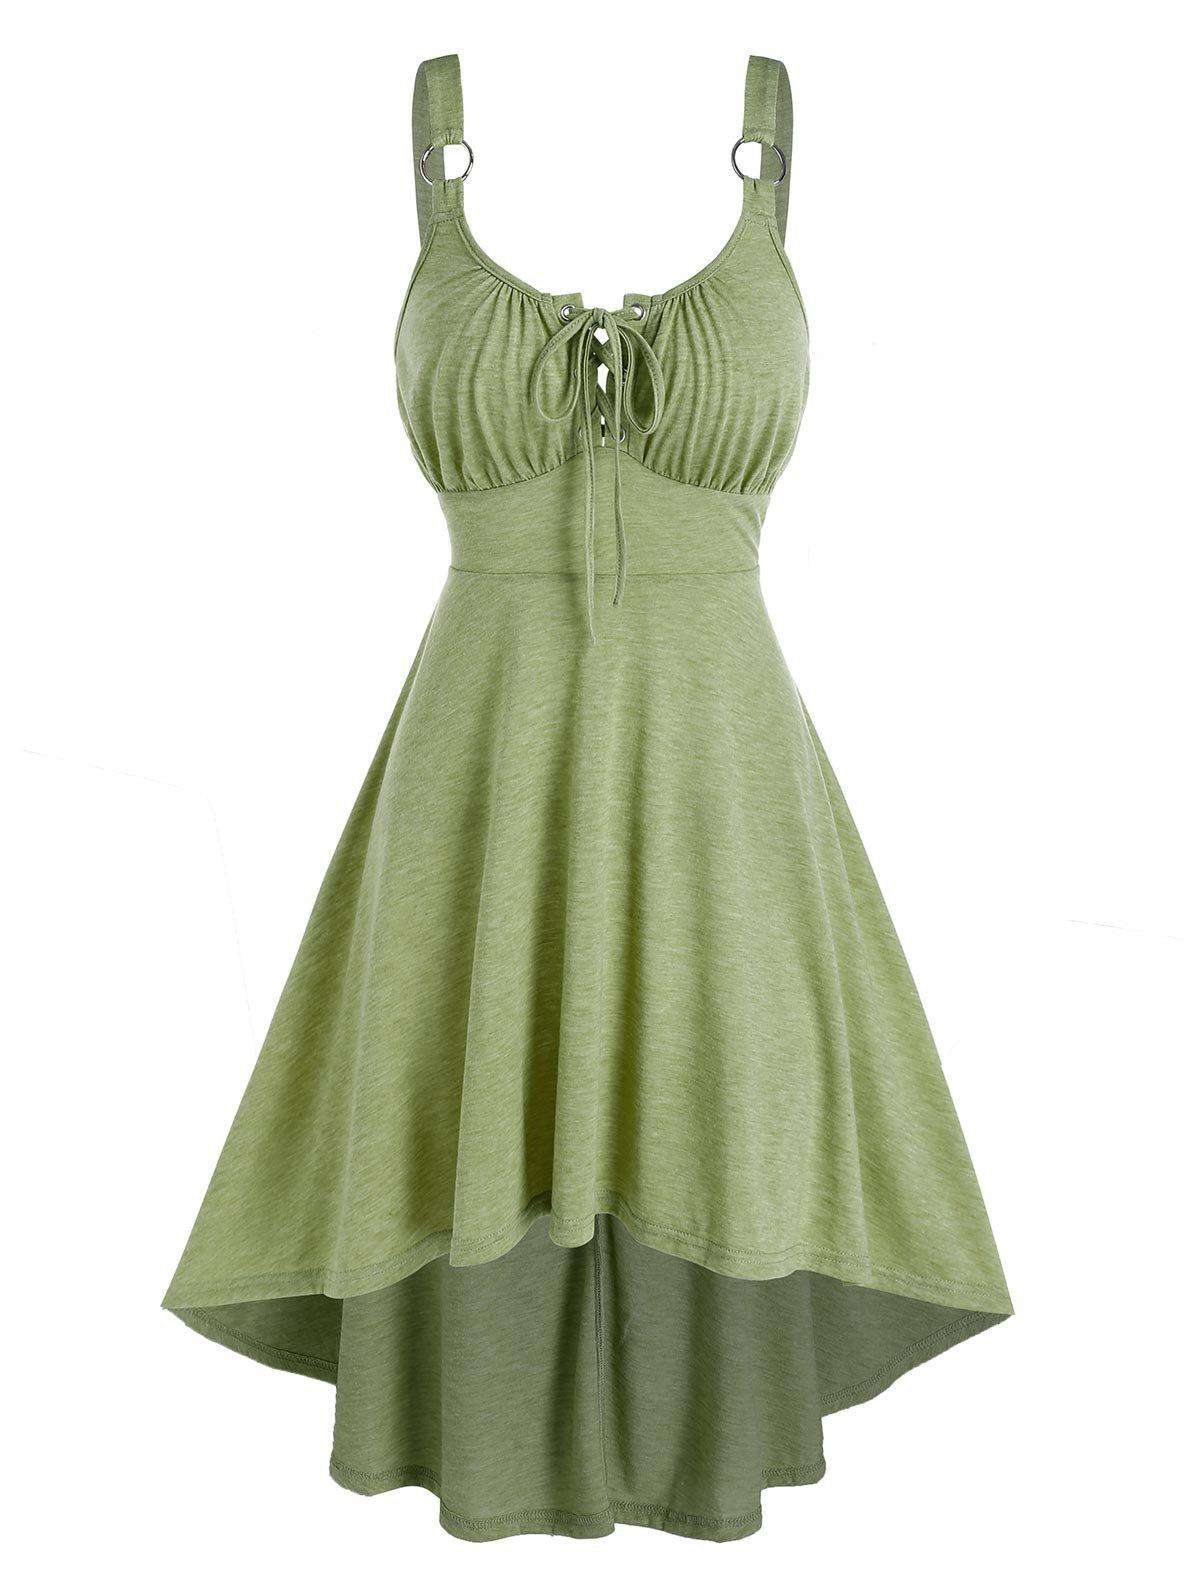 Sleeveless Lace-up Heathered High Low Dress - LIGHT GREEN 2XL